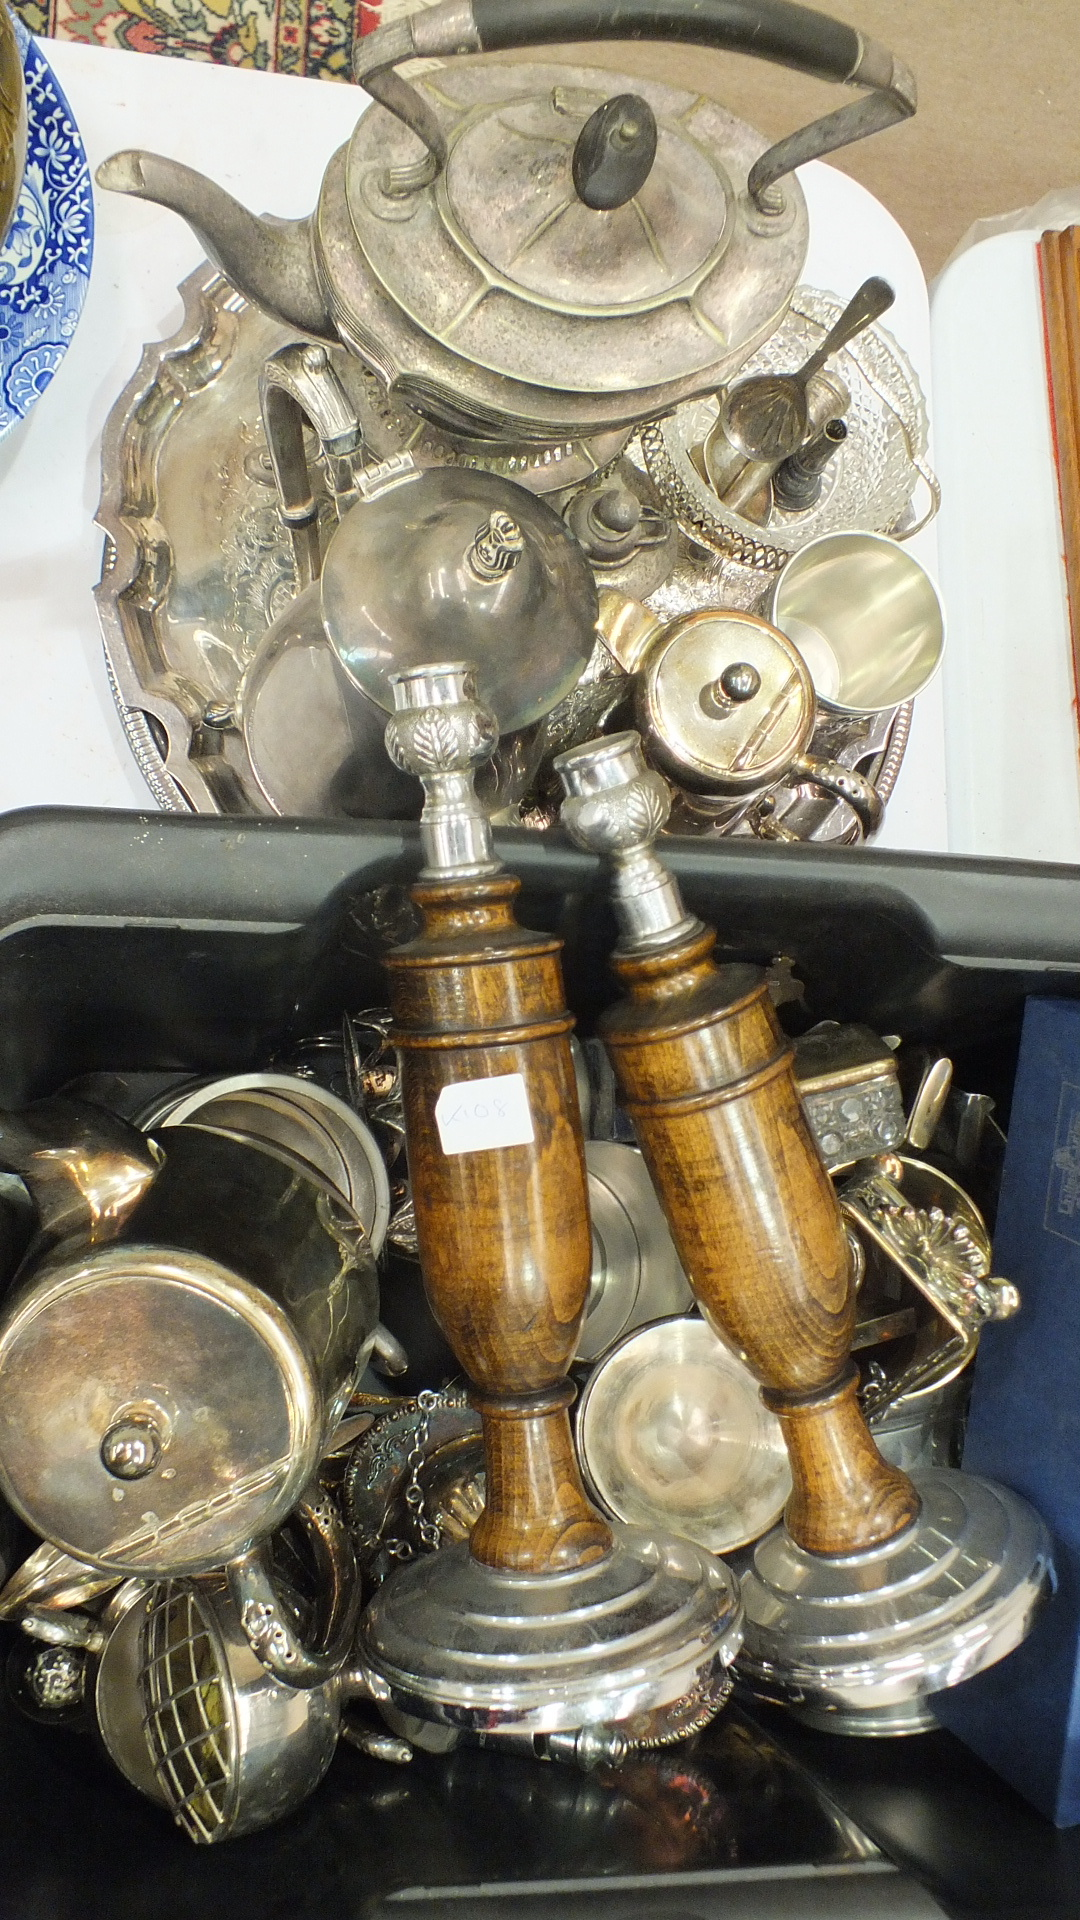 Lot 149 - A plated spirit kettle on stand, various hotel plate and other items.